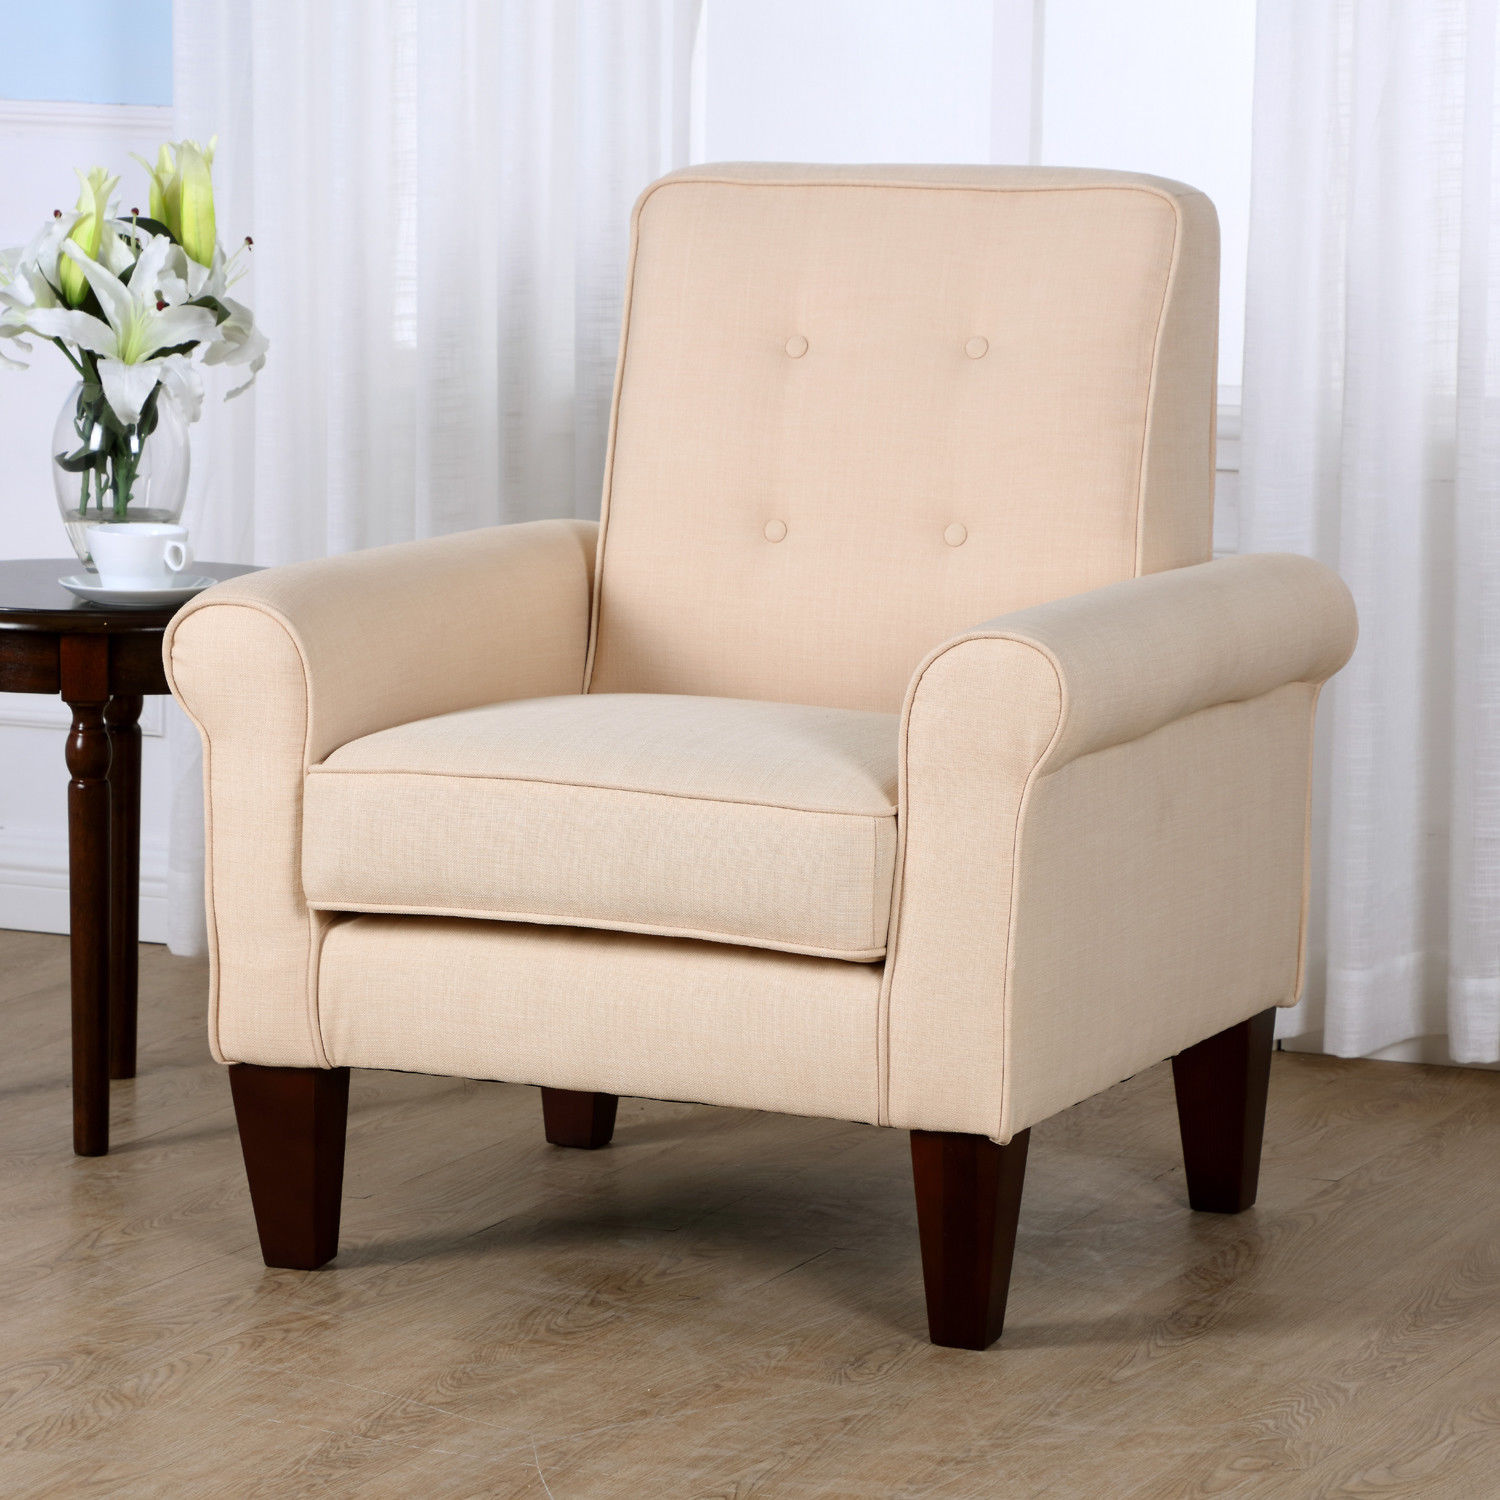 Linen Chair Accent Tufted Back Linen Upholstered Club Chair Armchair